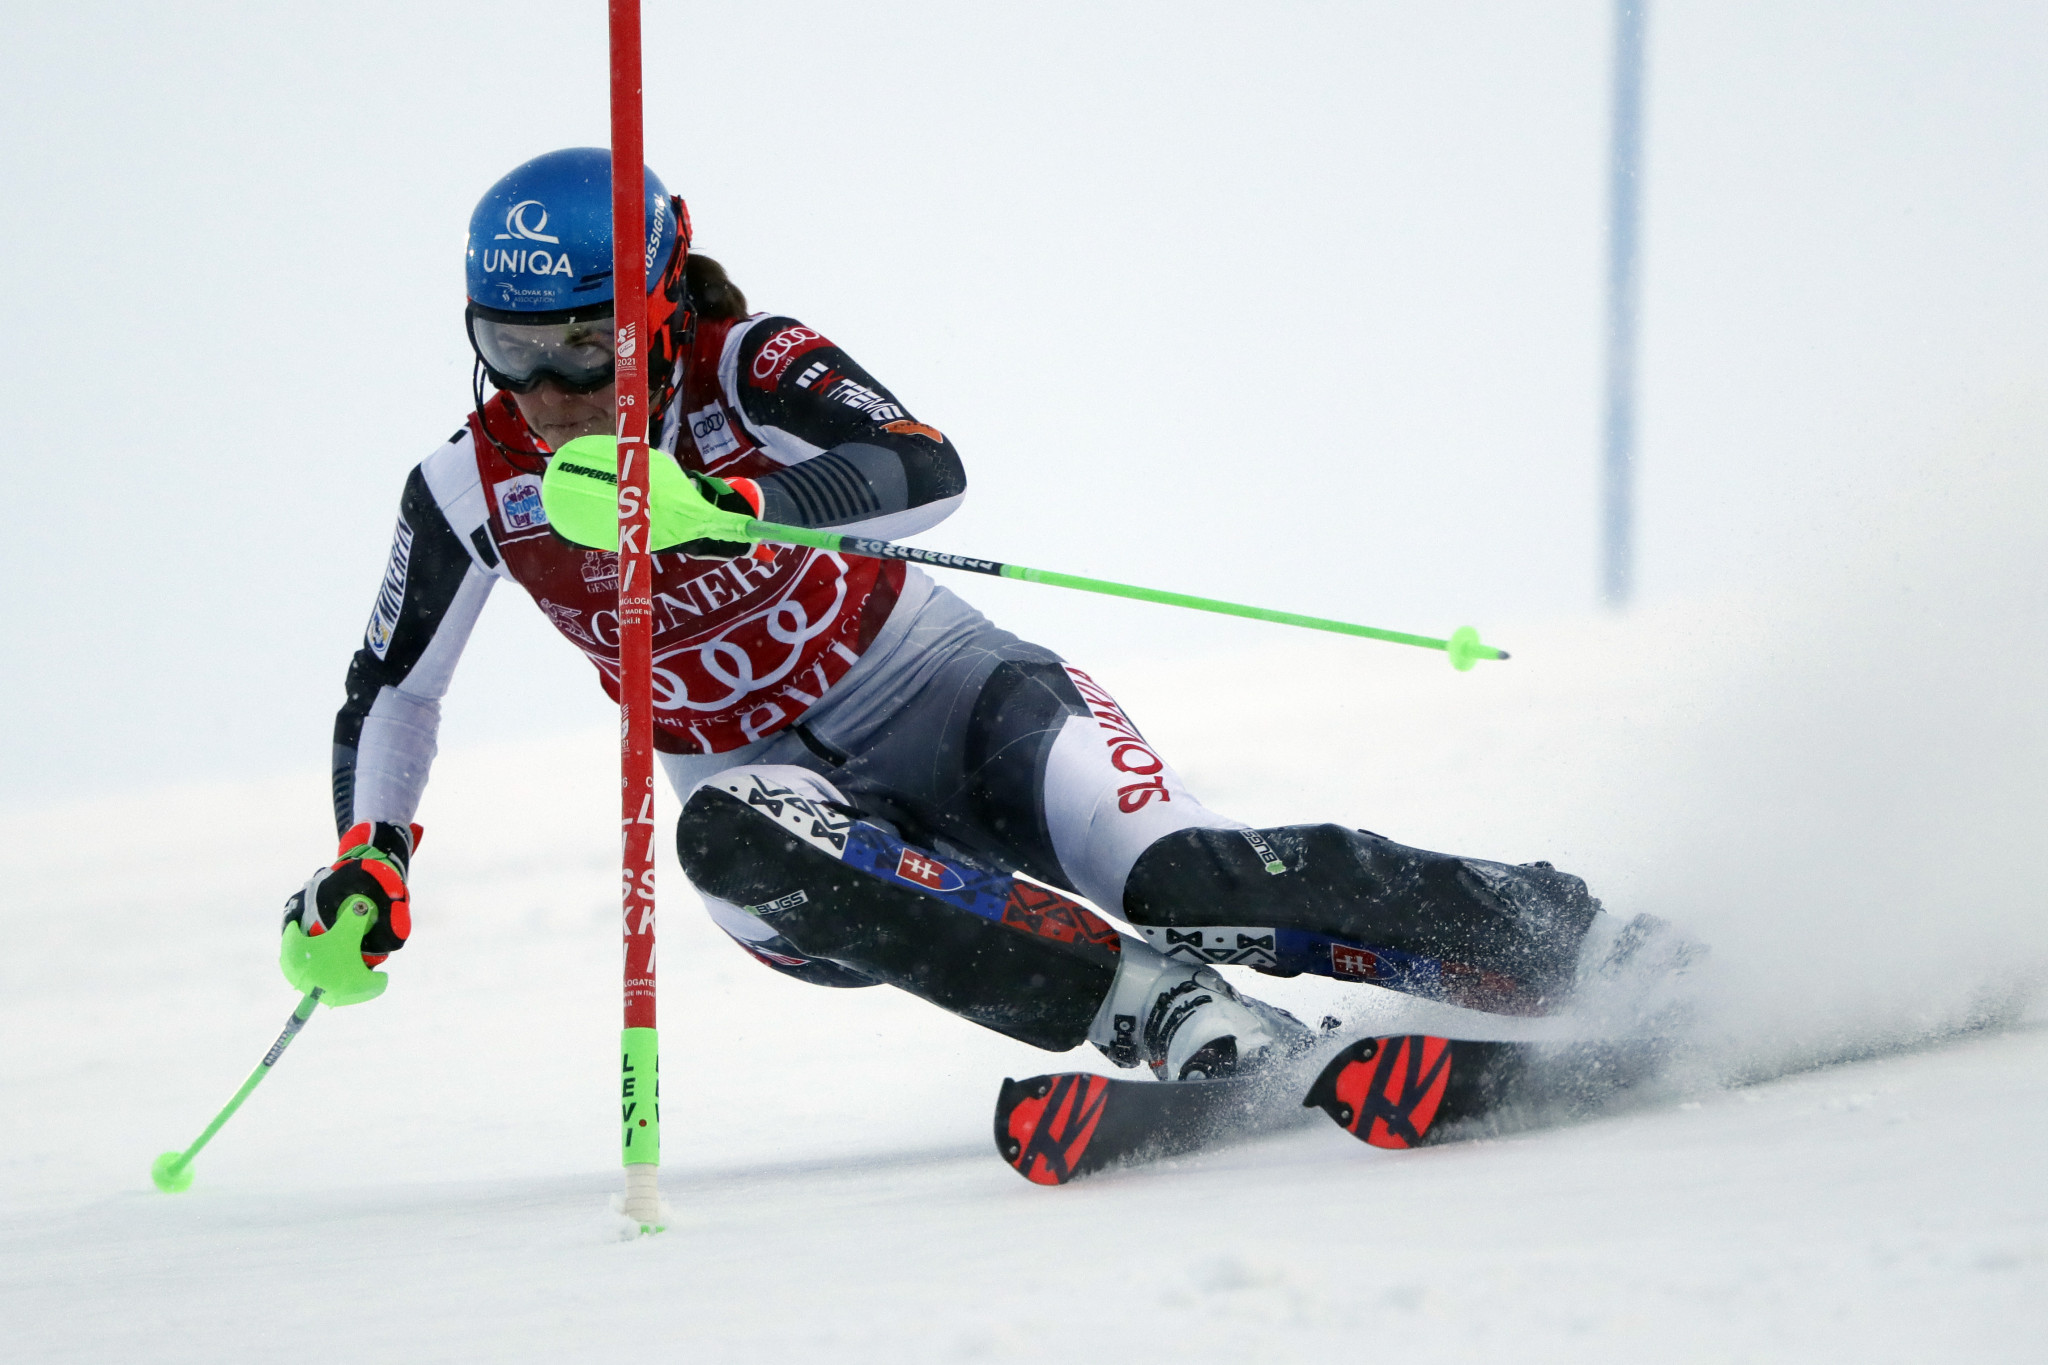 Petra Vlhová will be eyeing a fourth straight World Cup win in Courchevel ©Getty Images